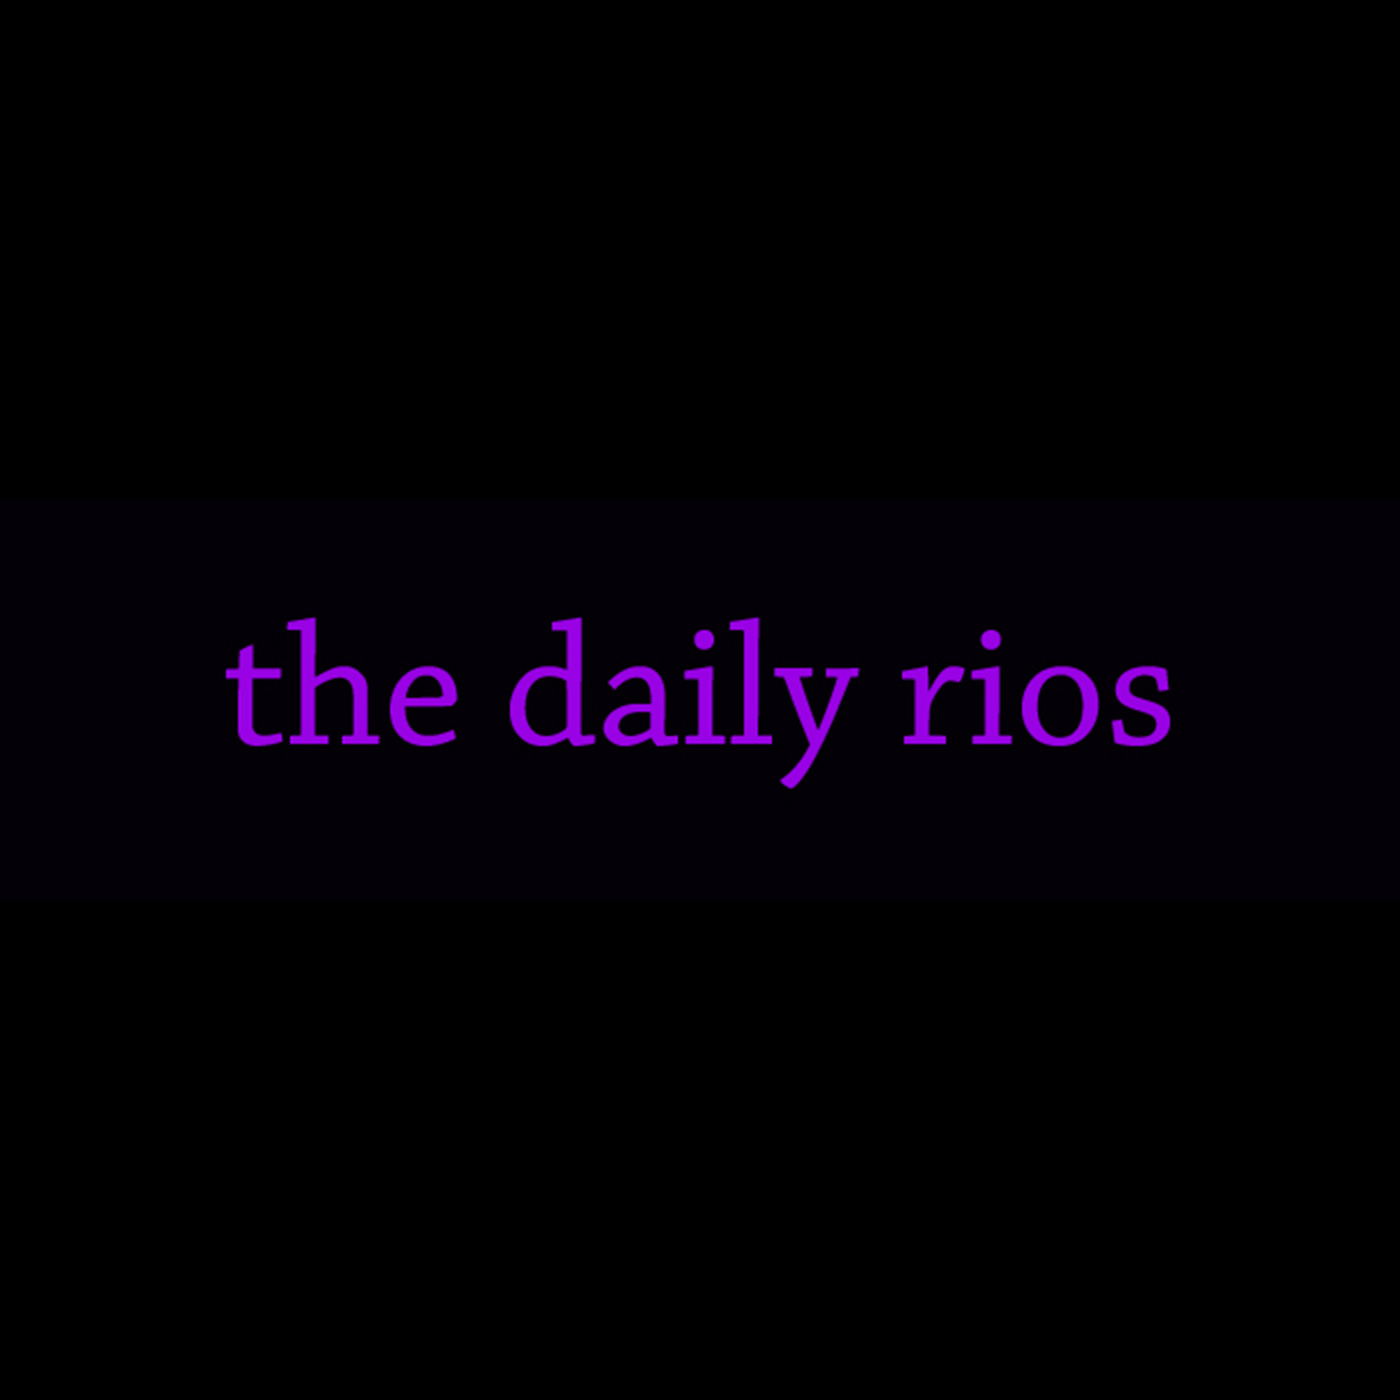 The Daily Rios